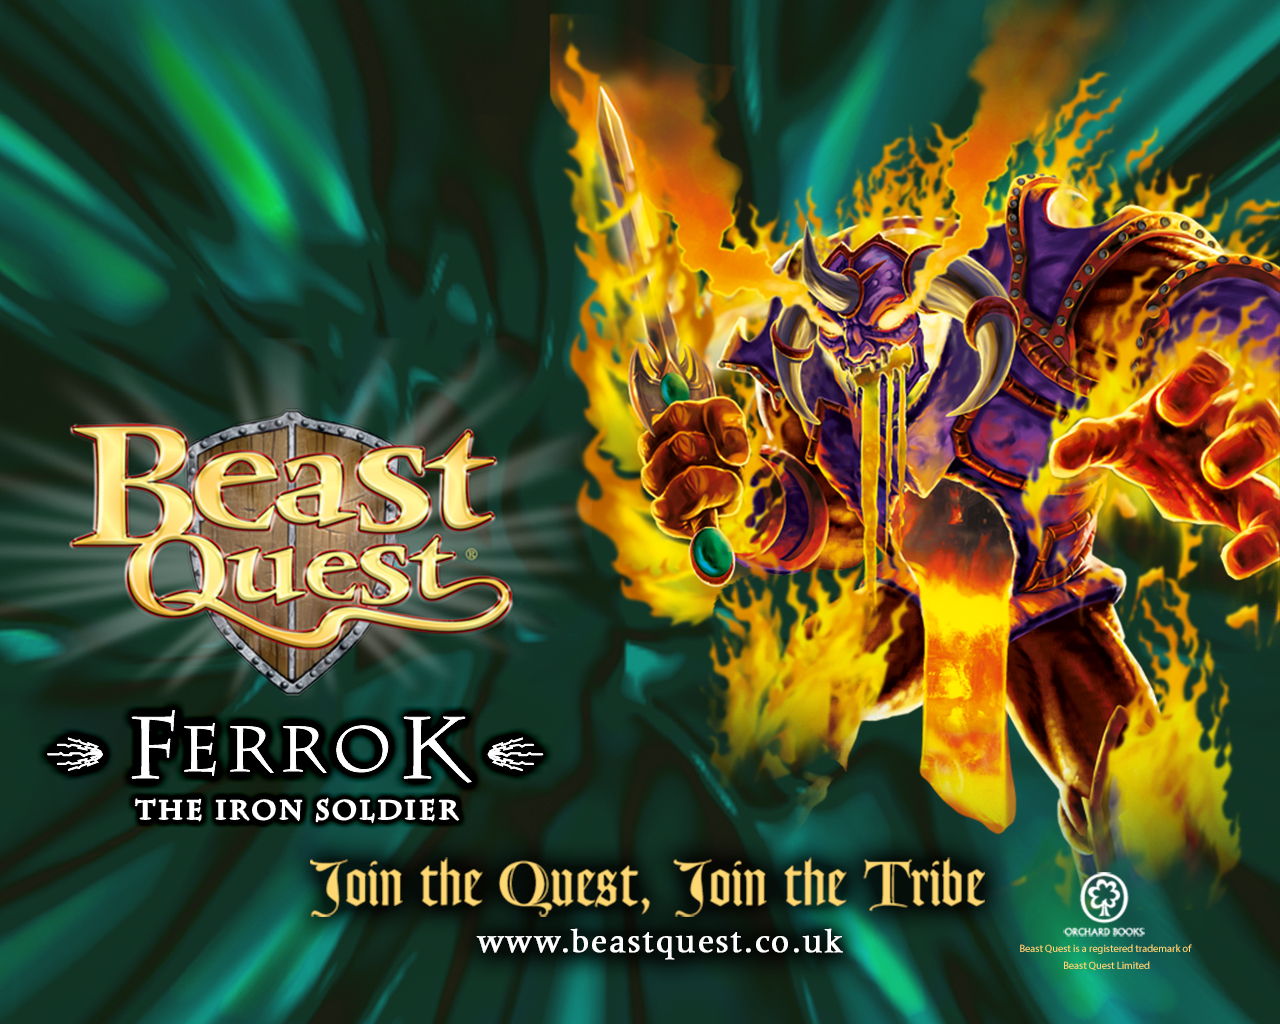 Beast Quest Ferrok Wallpaper  Scholastic Kids39; Club